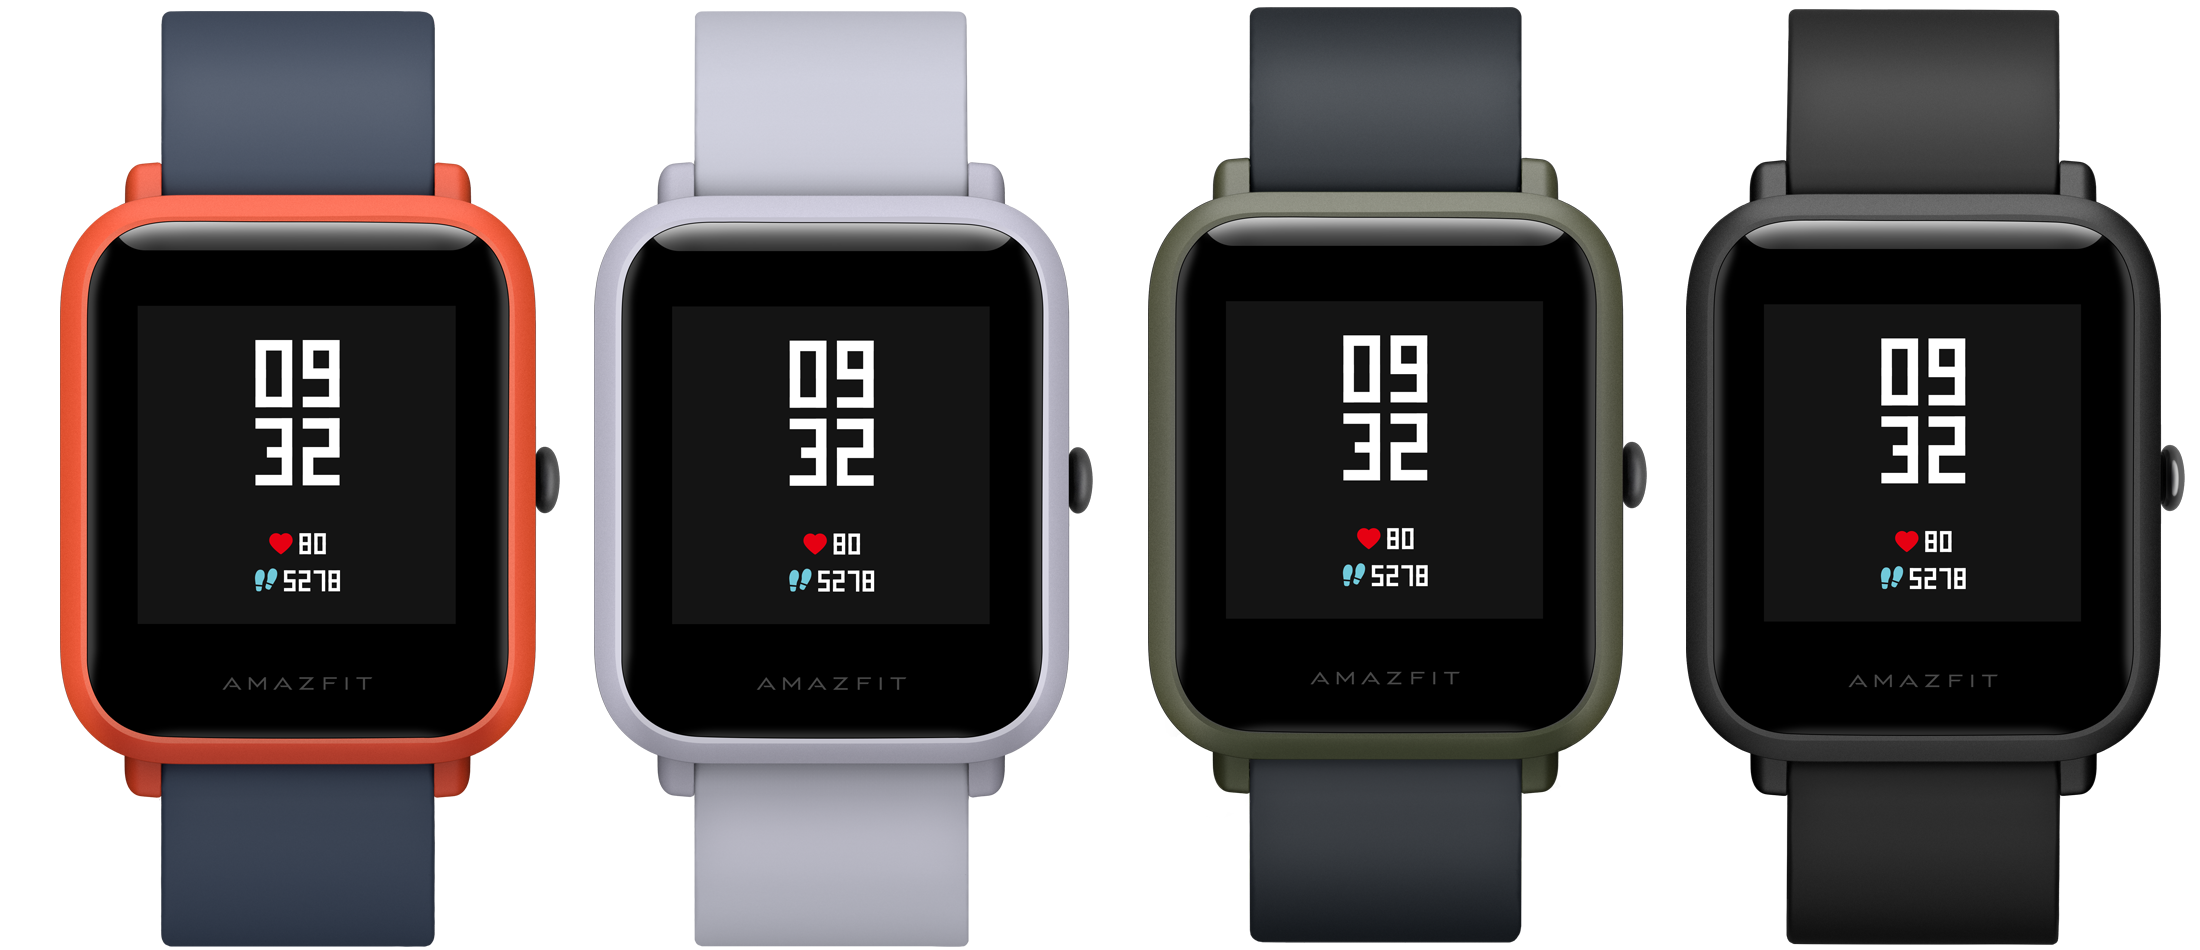 Xiaomi Amazfit Bip The Budget Smart Watch Mobiles In